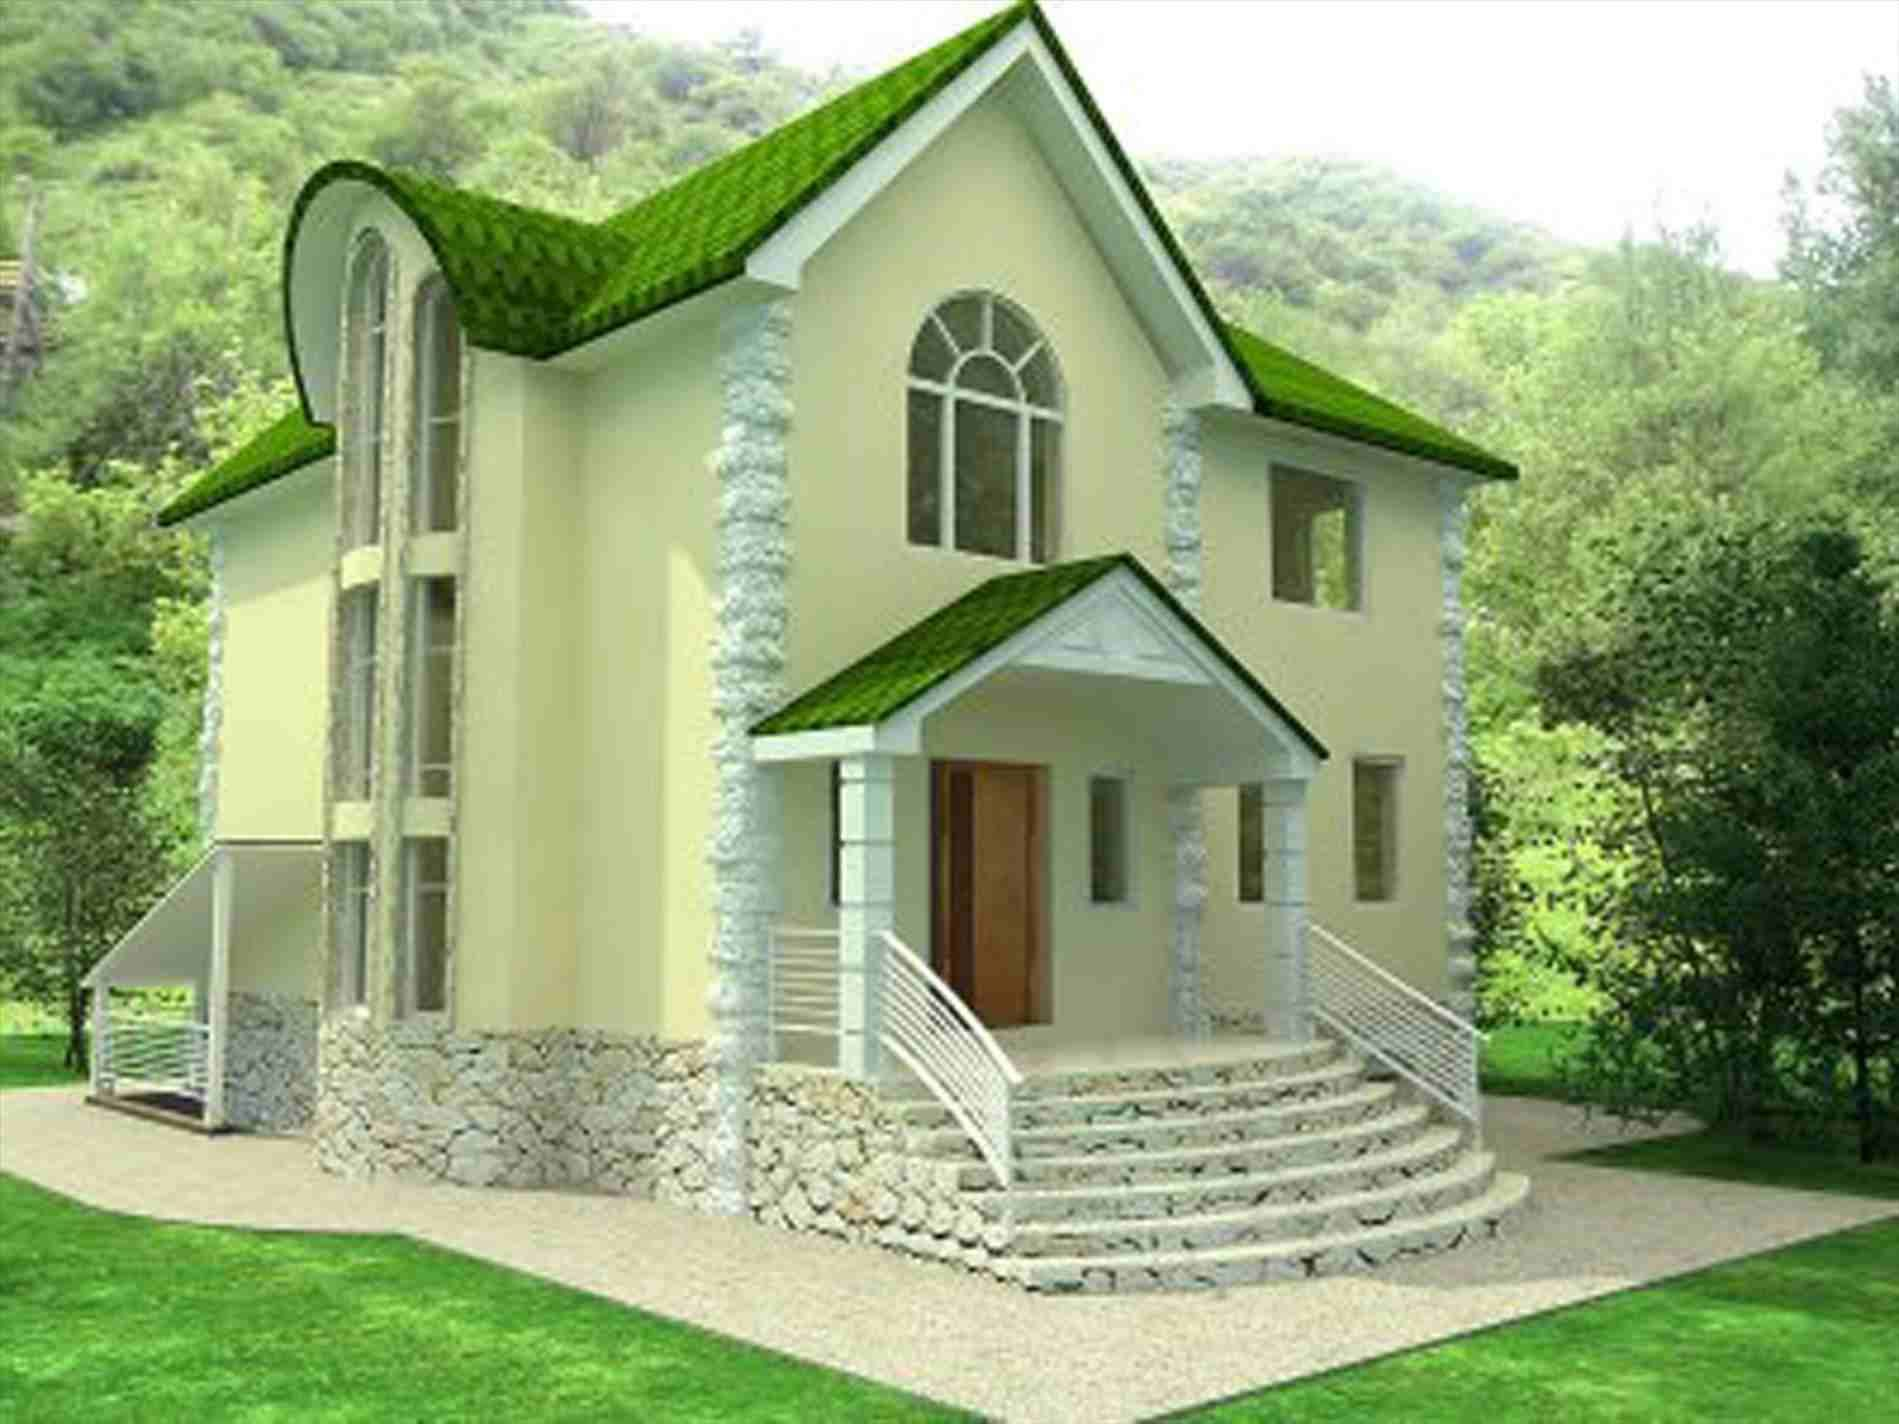 New post what color to paint house with green roof visit bobayule trending decors